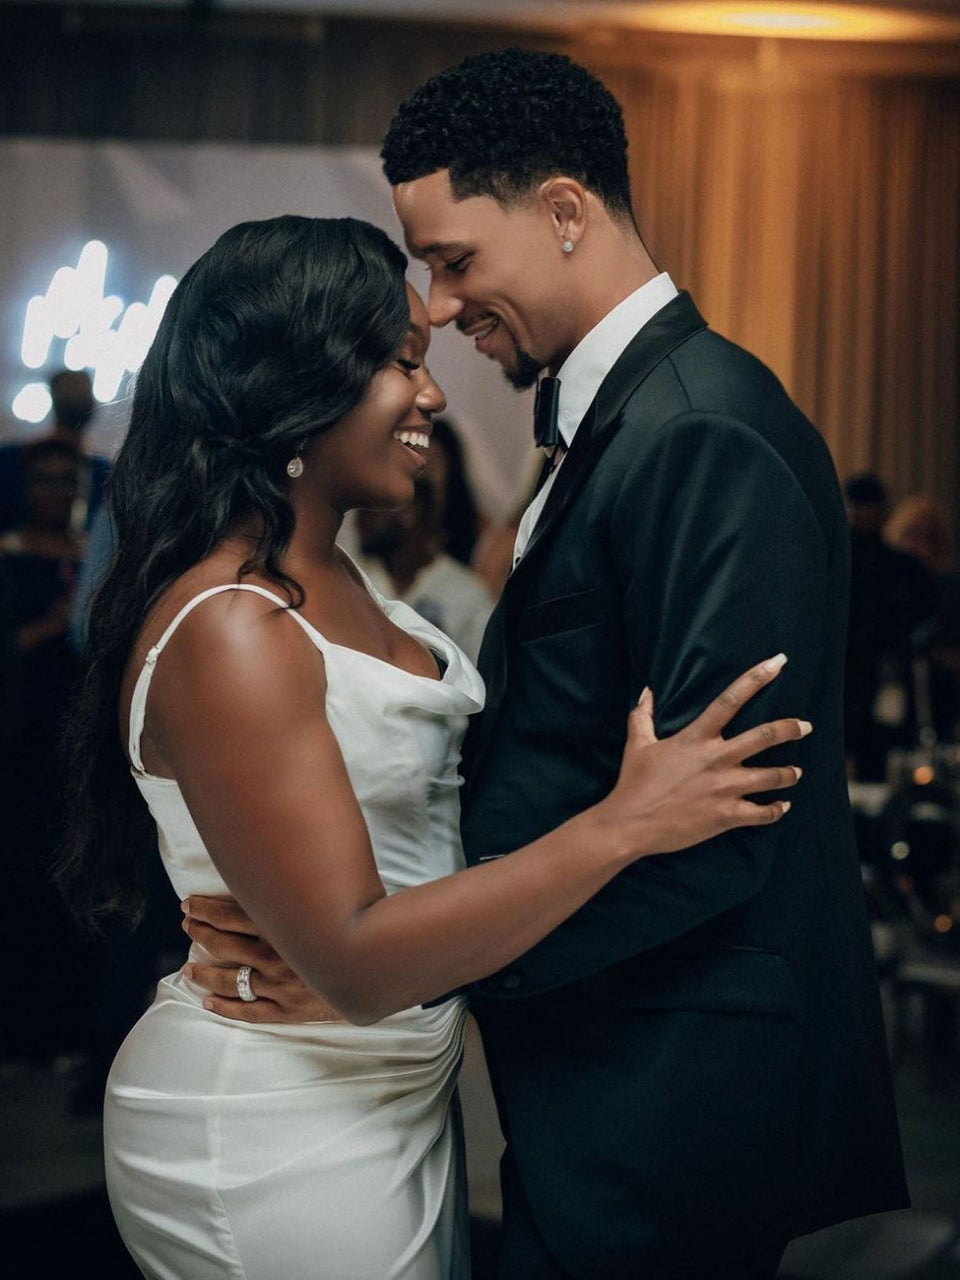 NBA Stars Josh Hart And Damian Lillard Wed Their High School And College Sweethearts And The Photos Are Everything